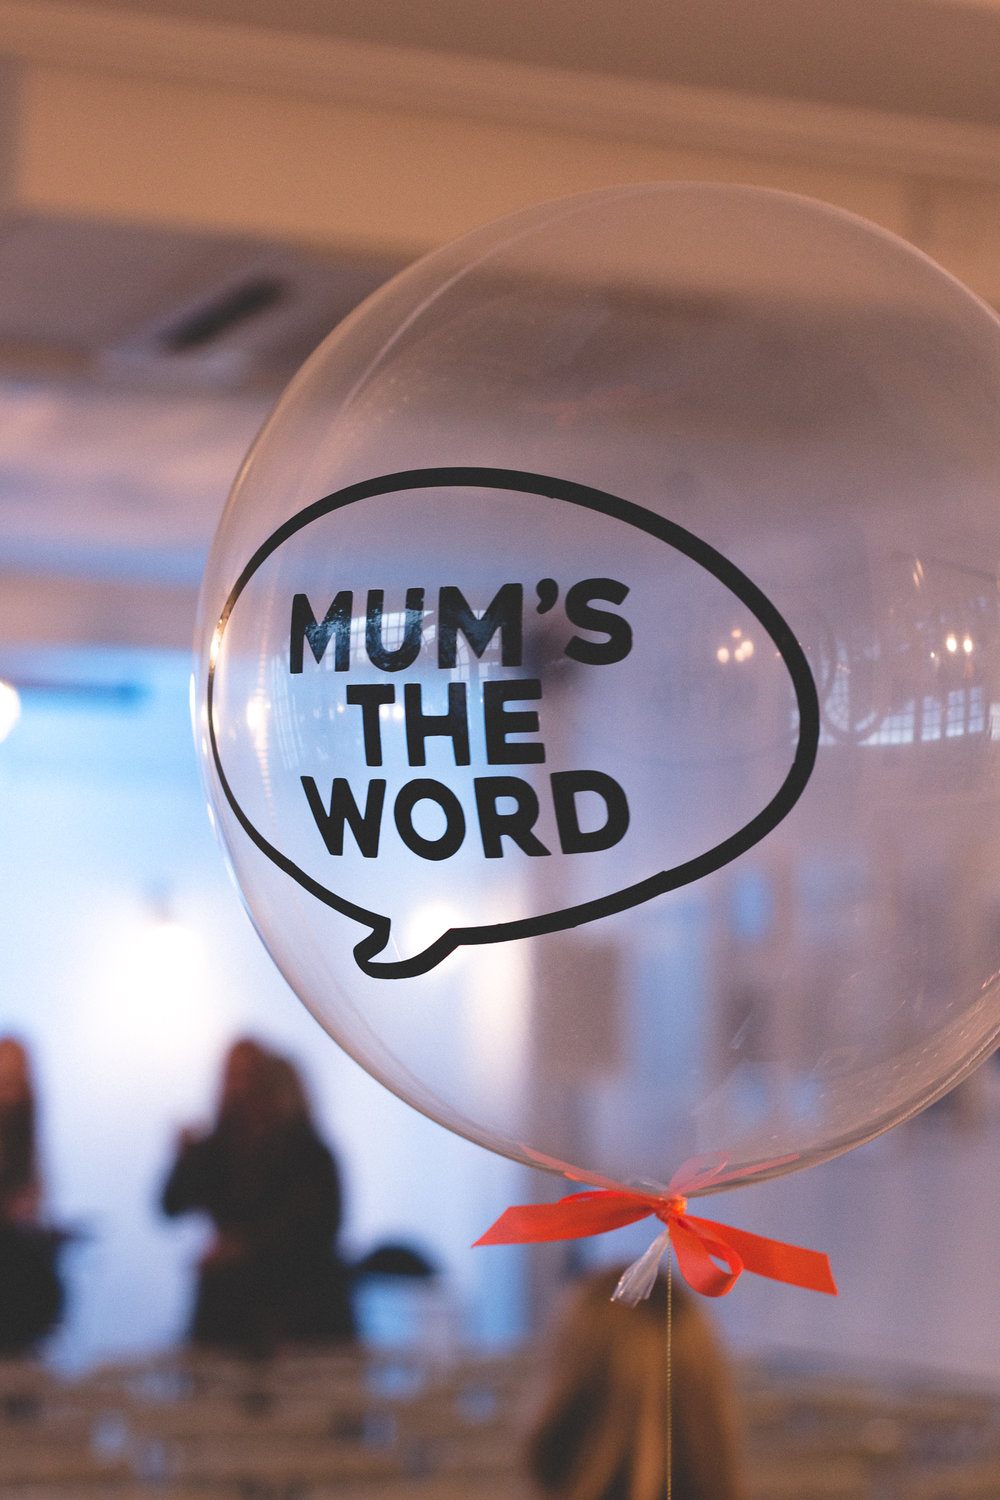 mums-the-word-bloggers-and--brands-24.jpg